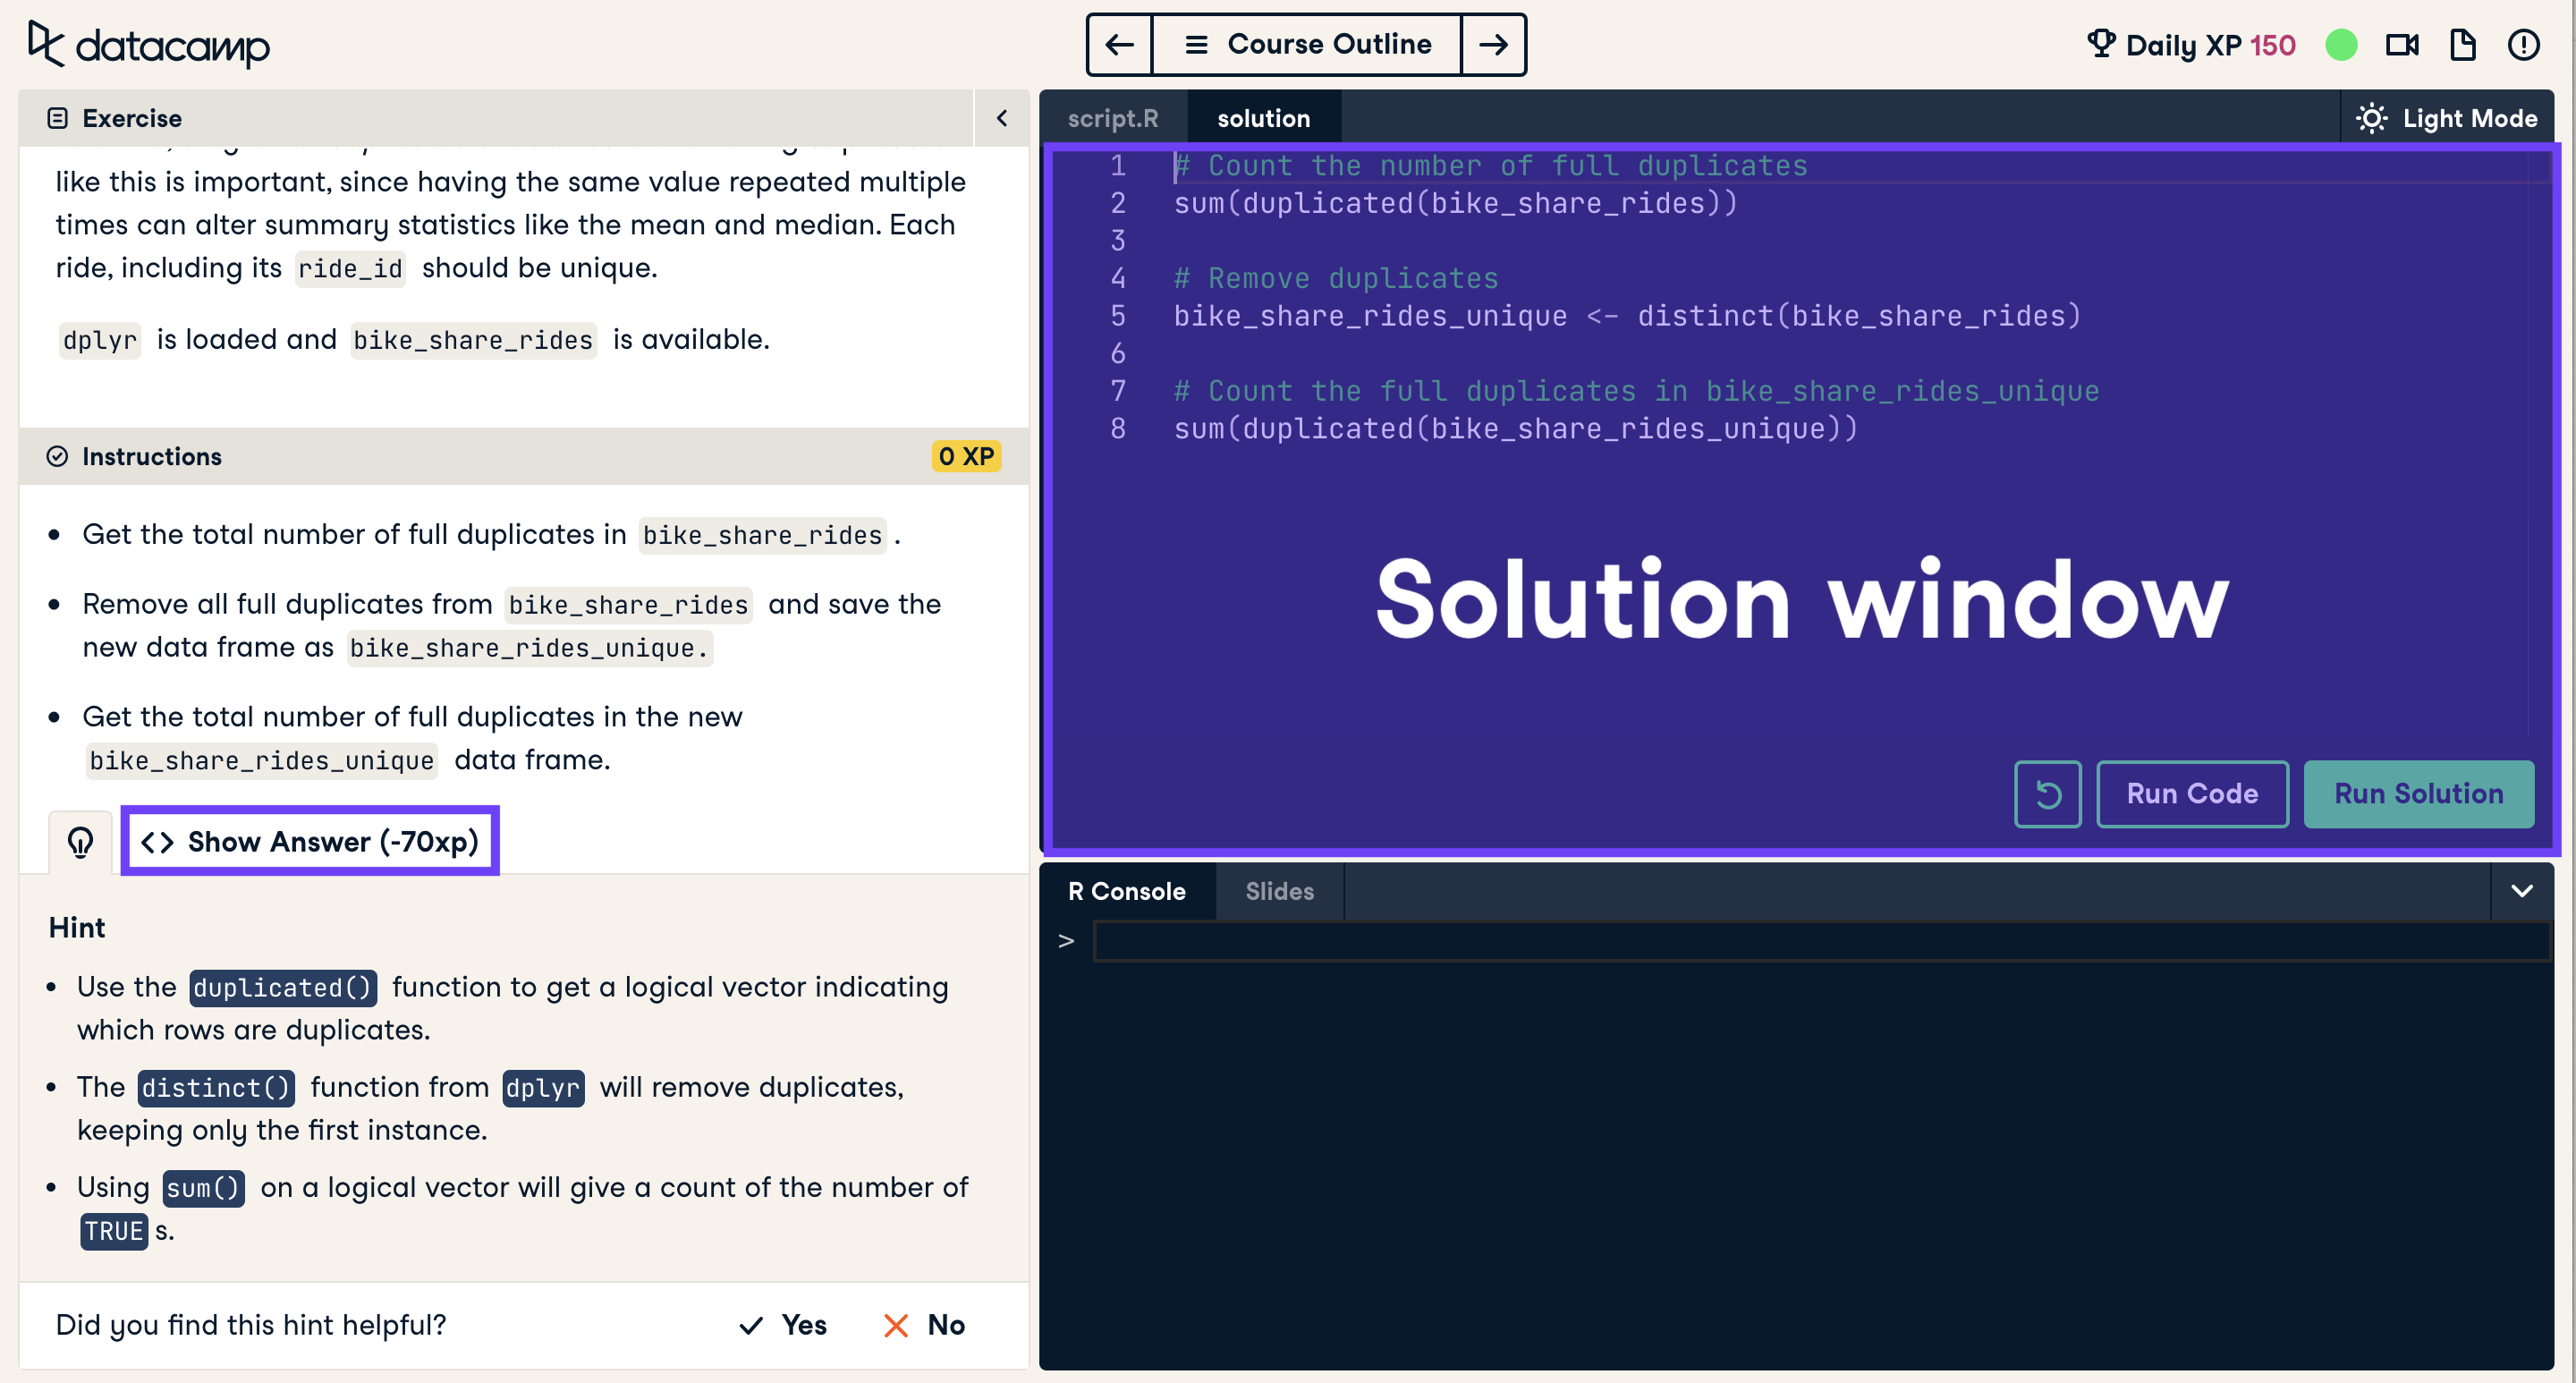 Screenshot of coding exercise with solution window highlighted